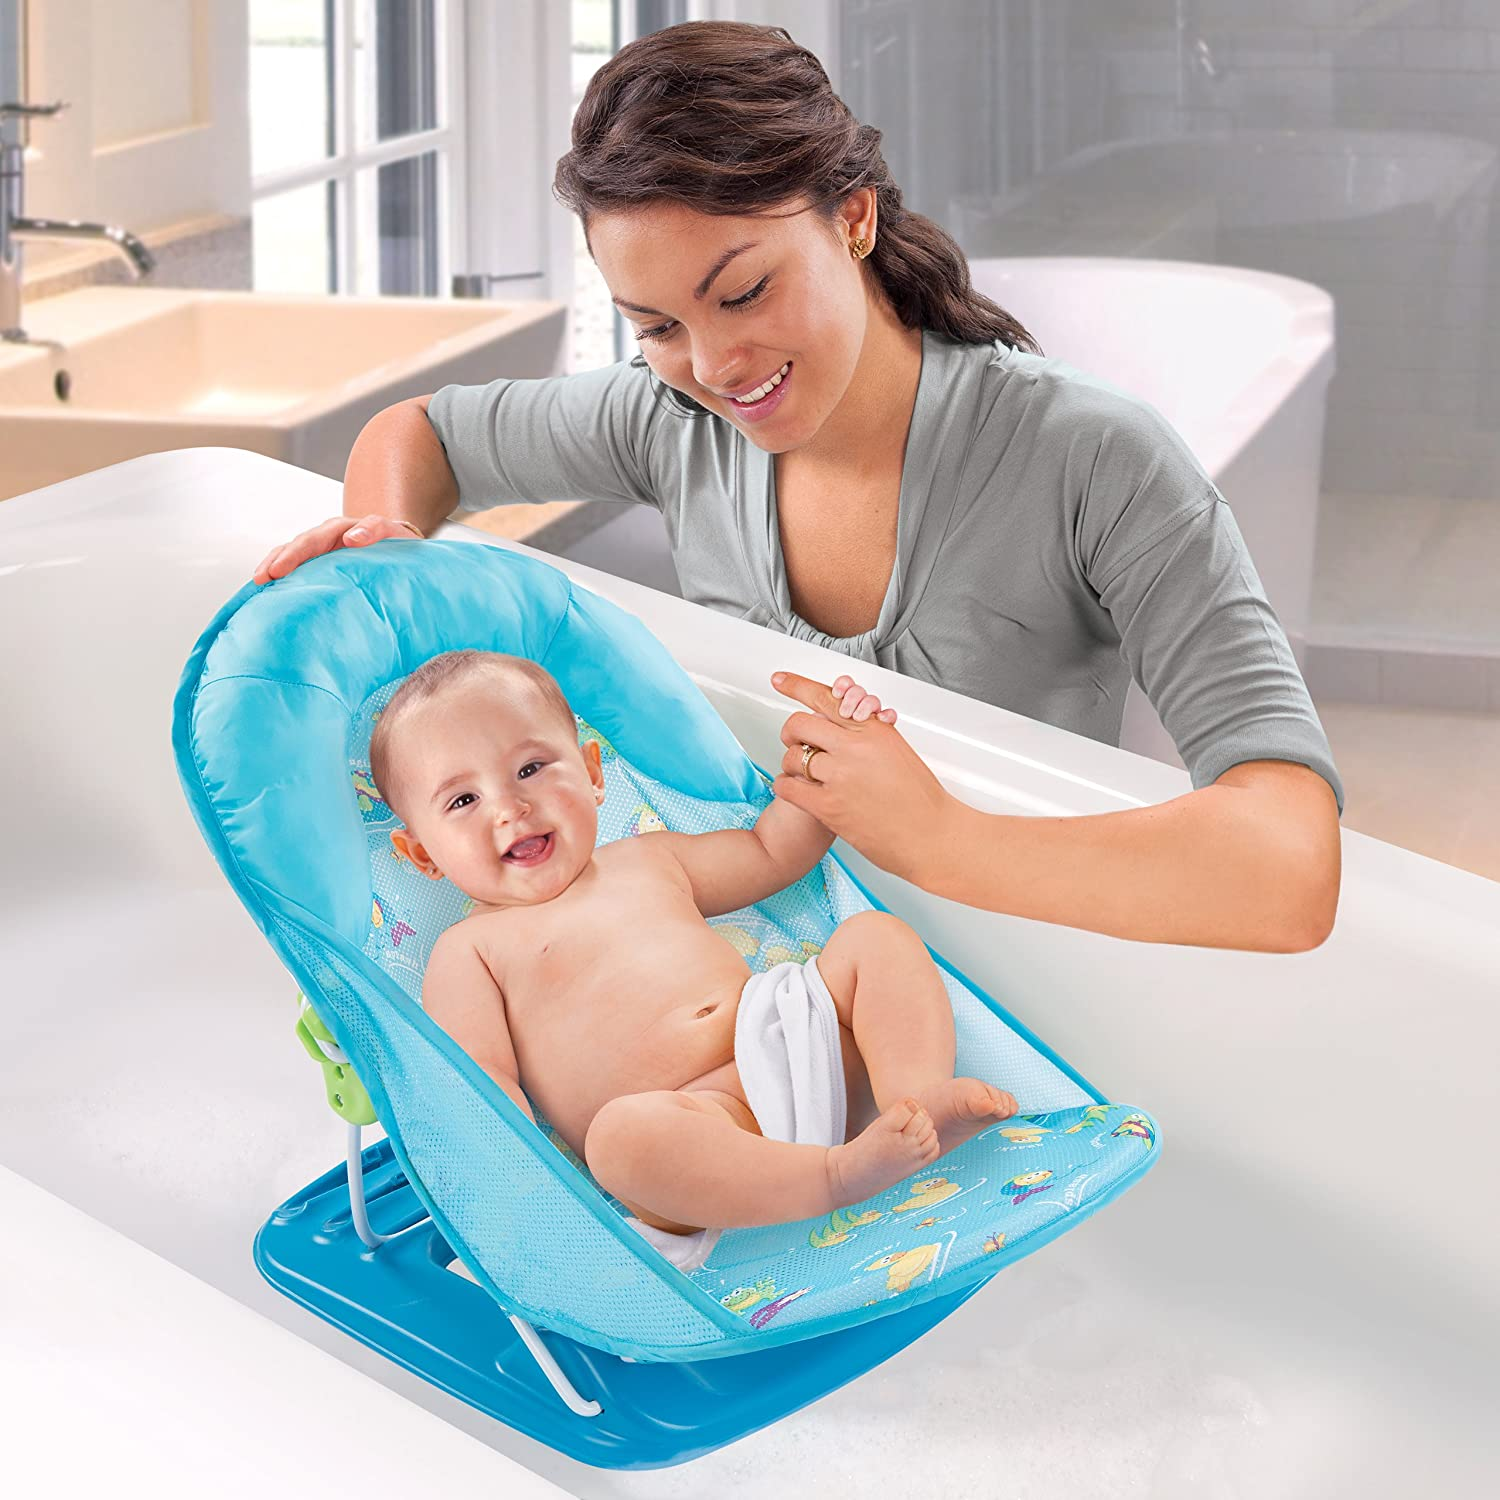 Baby bath chairs for the tub - Amazon Com Summer Infant Deluxe Baby Bather Blue Baby Bathing Seats And Tubs Baby